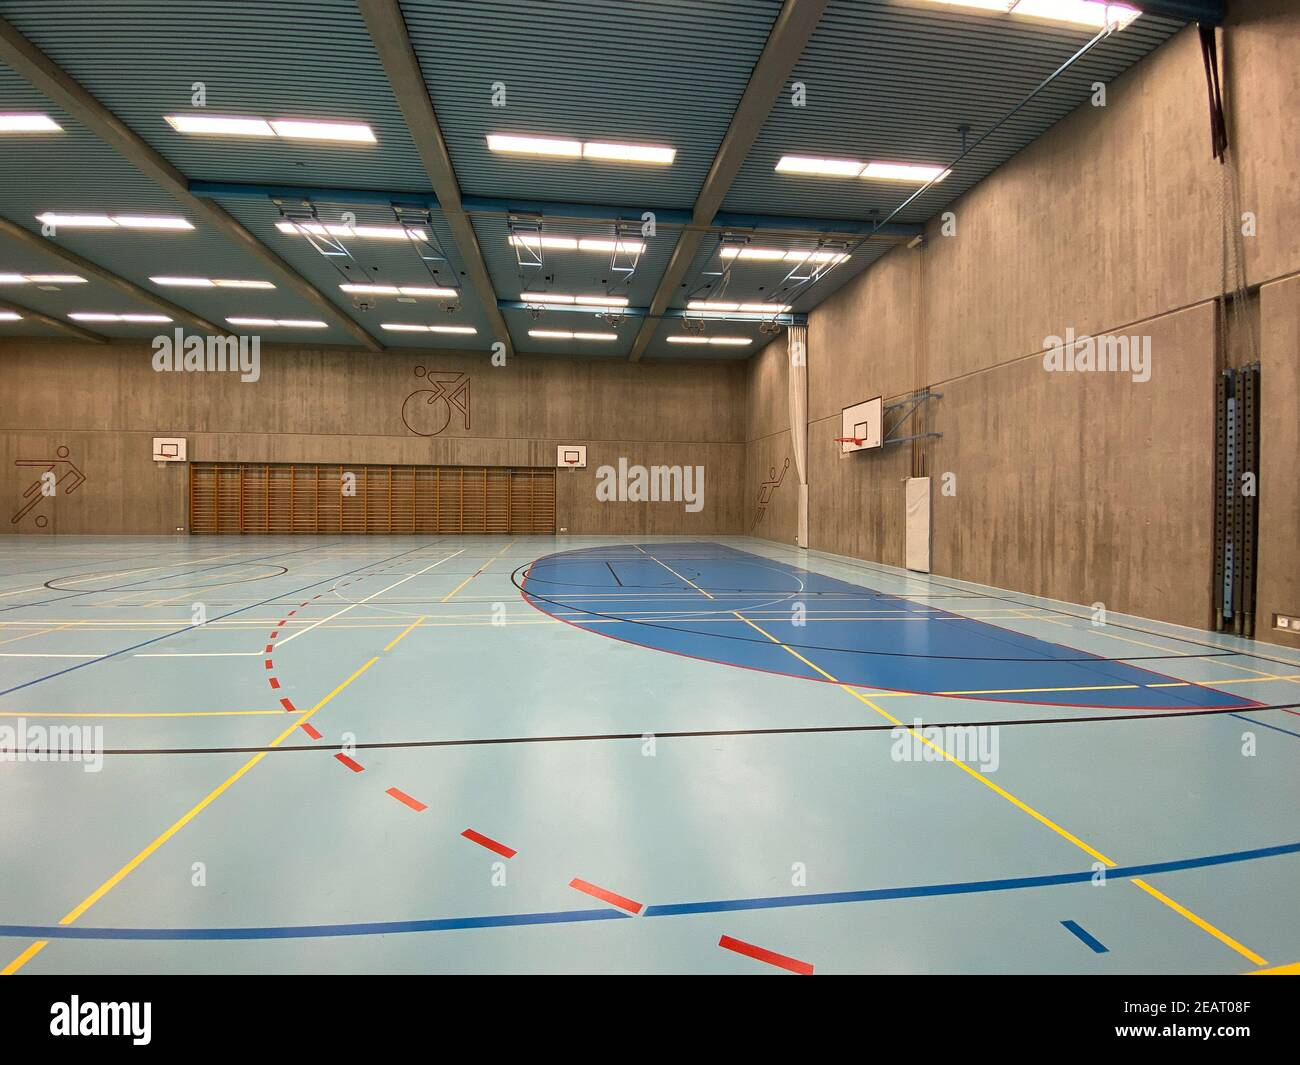 Indoor Courts High Resolution Stock Photography And Images Alamy